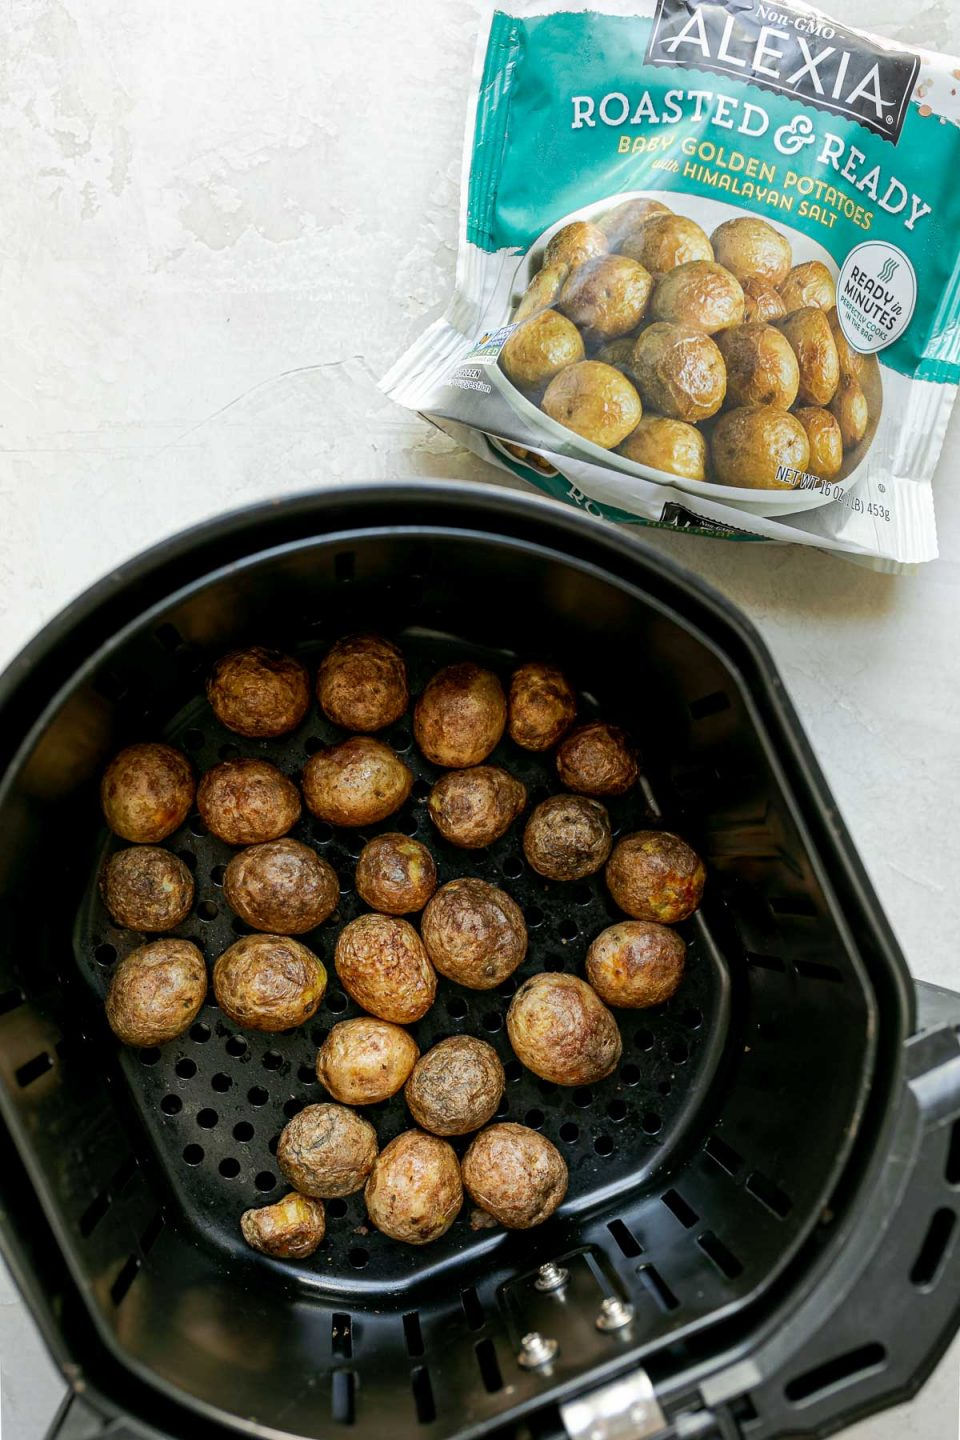 Alexia Ready & Roasted Baby Golden Potatoes inside an Air Fryer basket. The air fryer sits on top of a white surface. A bag of Alexia Roasted & Ready Baby Golden Potatoes sits next to the air fryer basket.